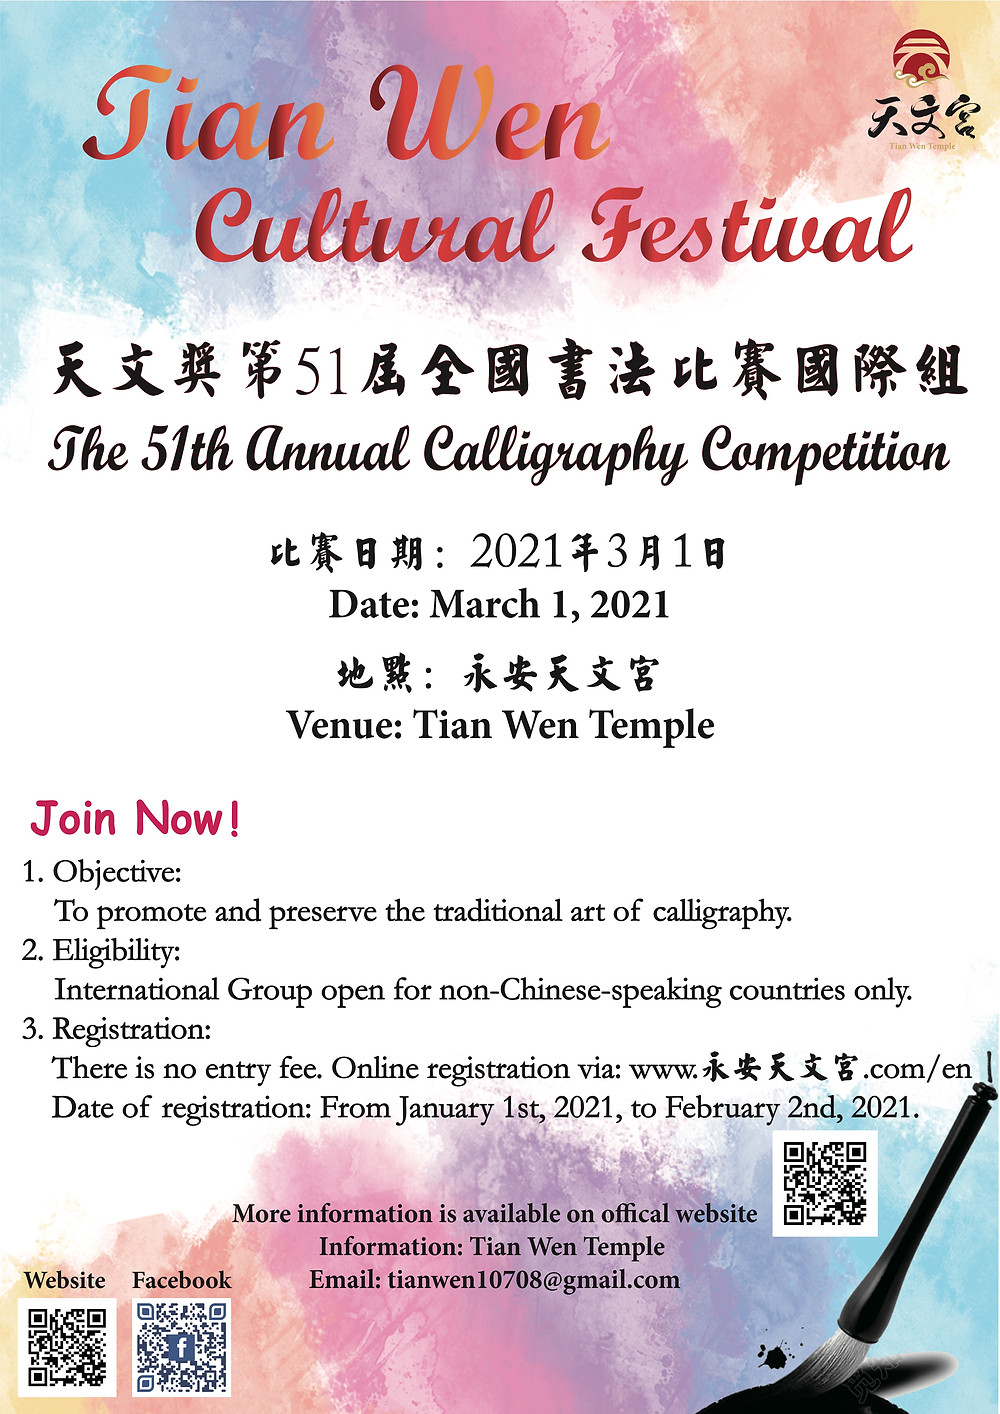 The 51th Annual Calligraphy Competition of Tian Wen Temple Rules and Regulations